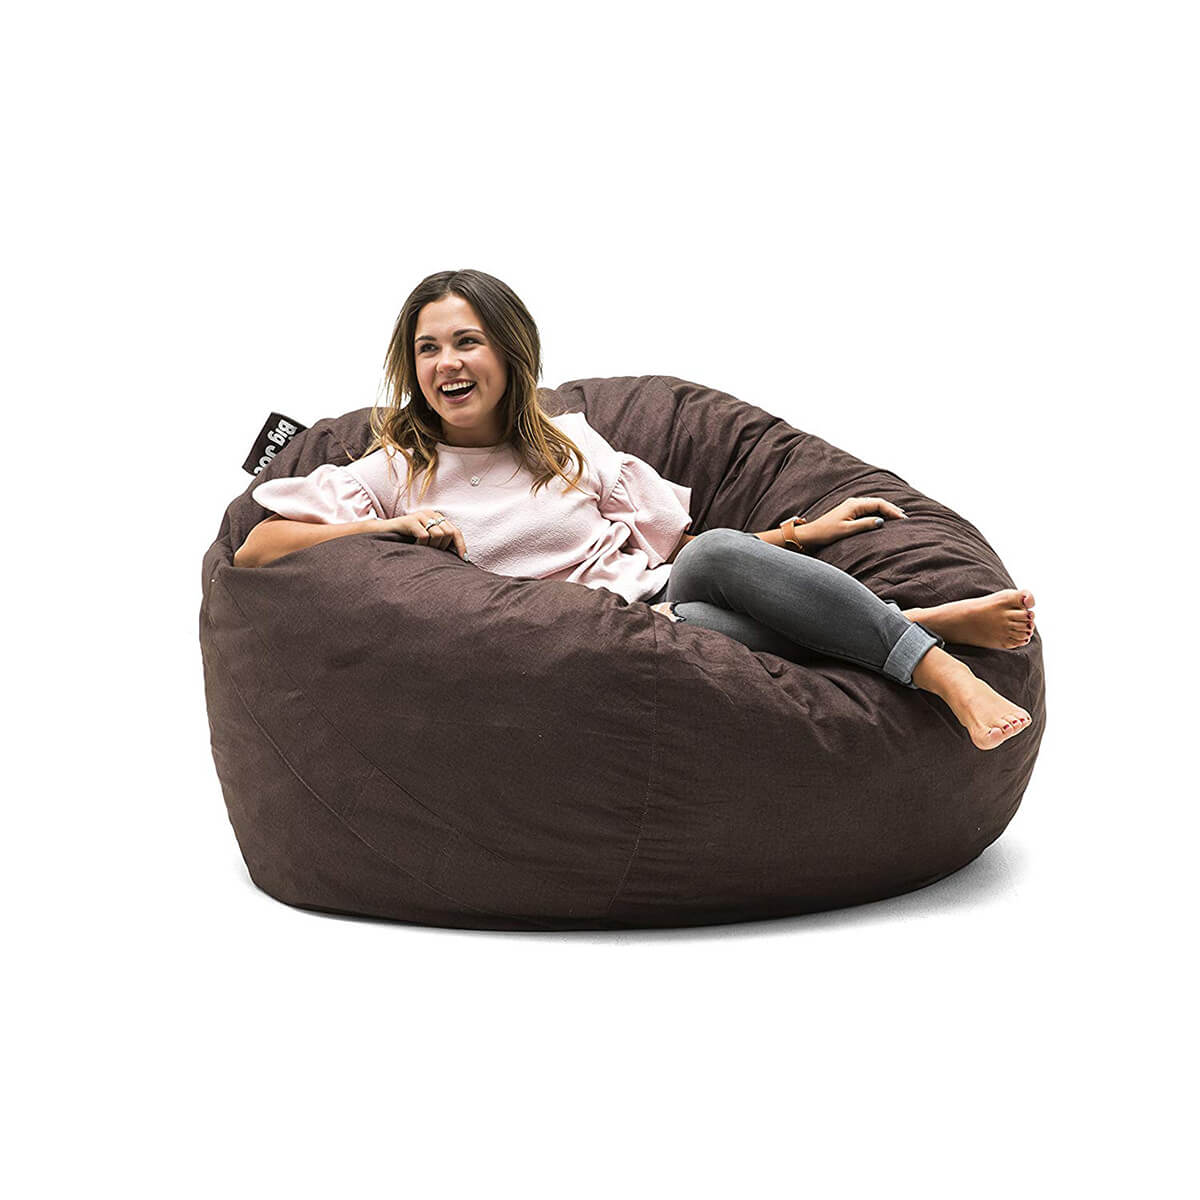 Original Big Joe Cocoa Lenox Fuf Foam-Filled Bean Bag